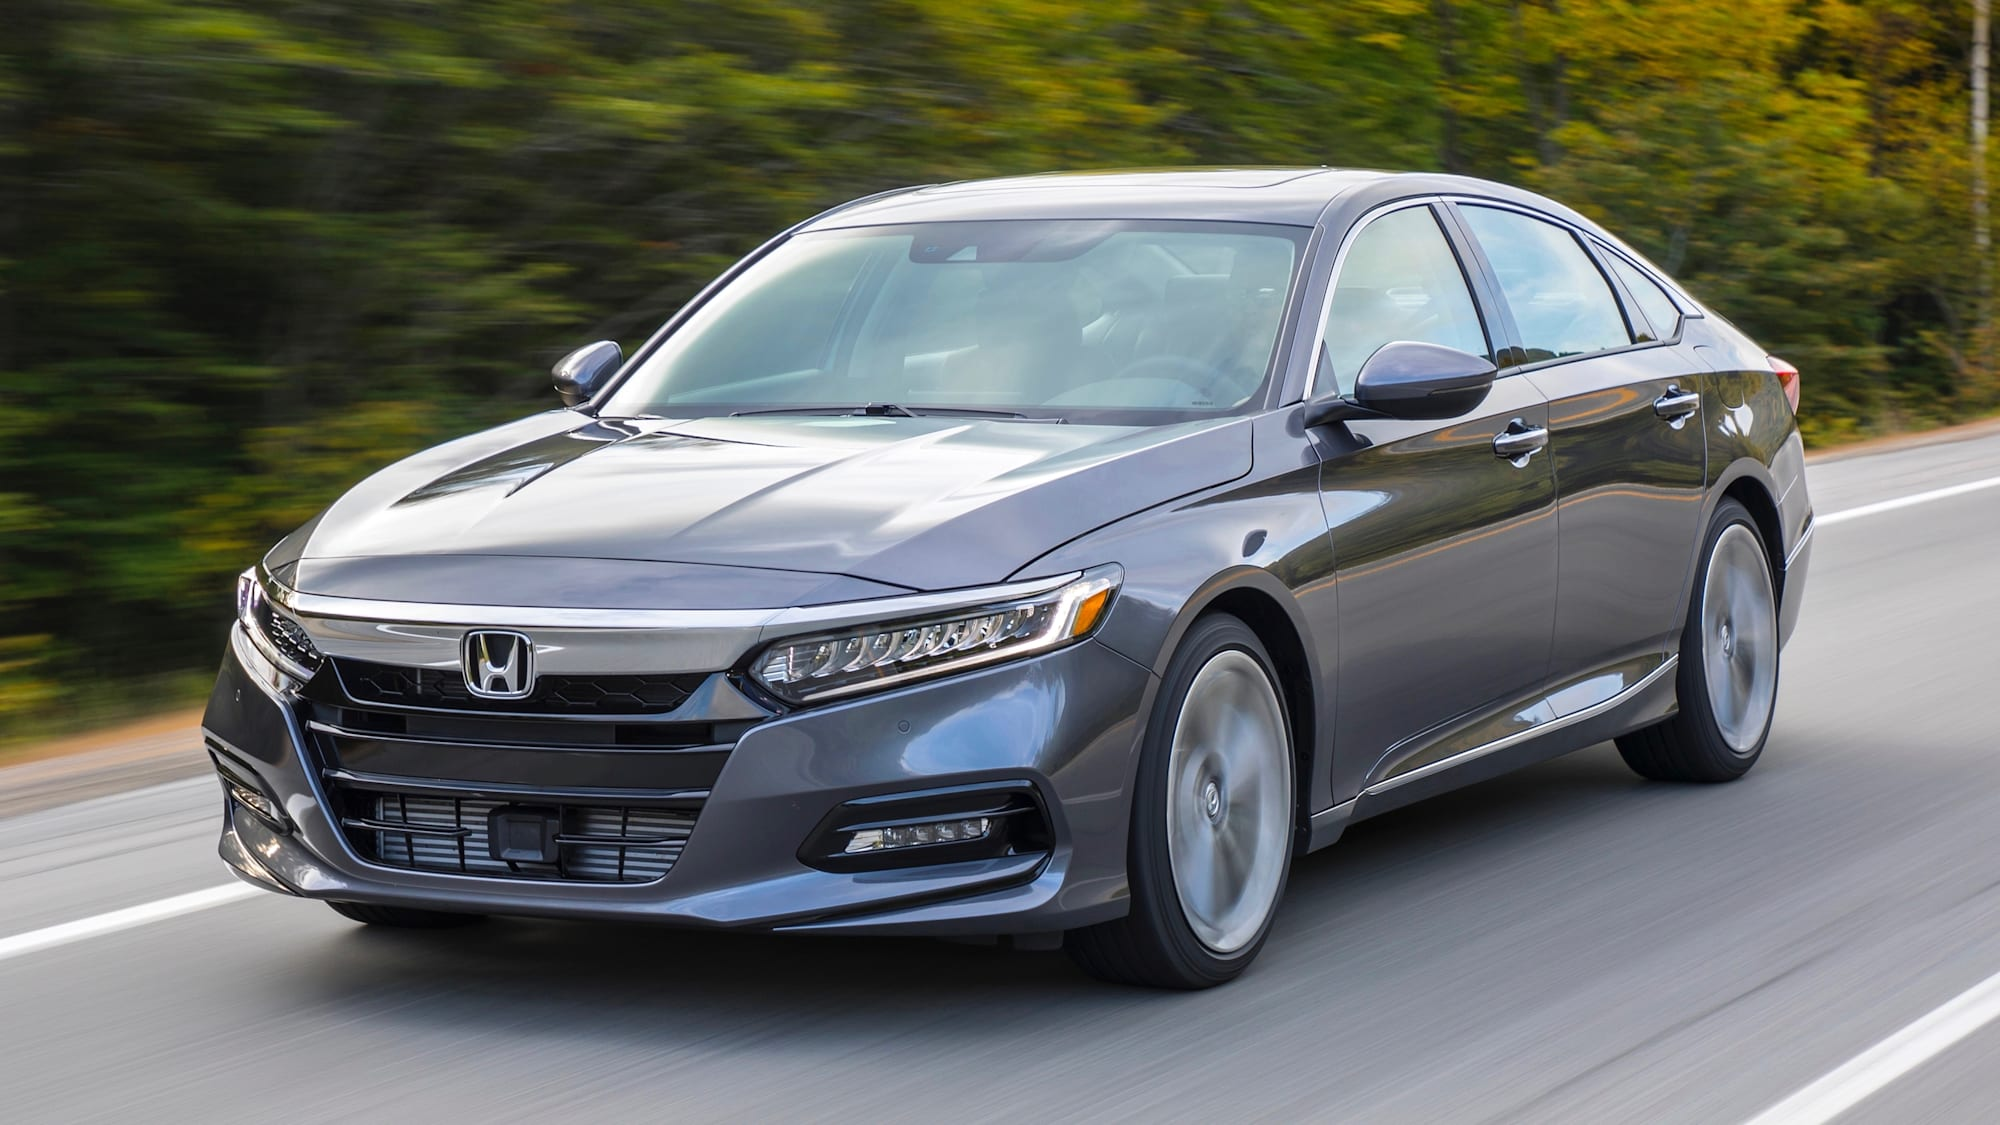 2019 Honda Accord Lx 4dr Sedan Pricing And Options